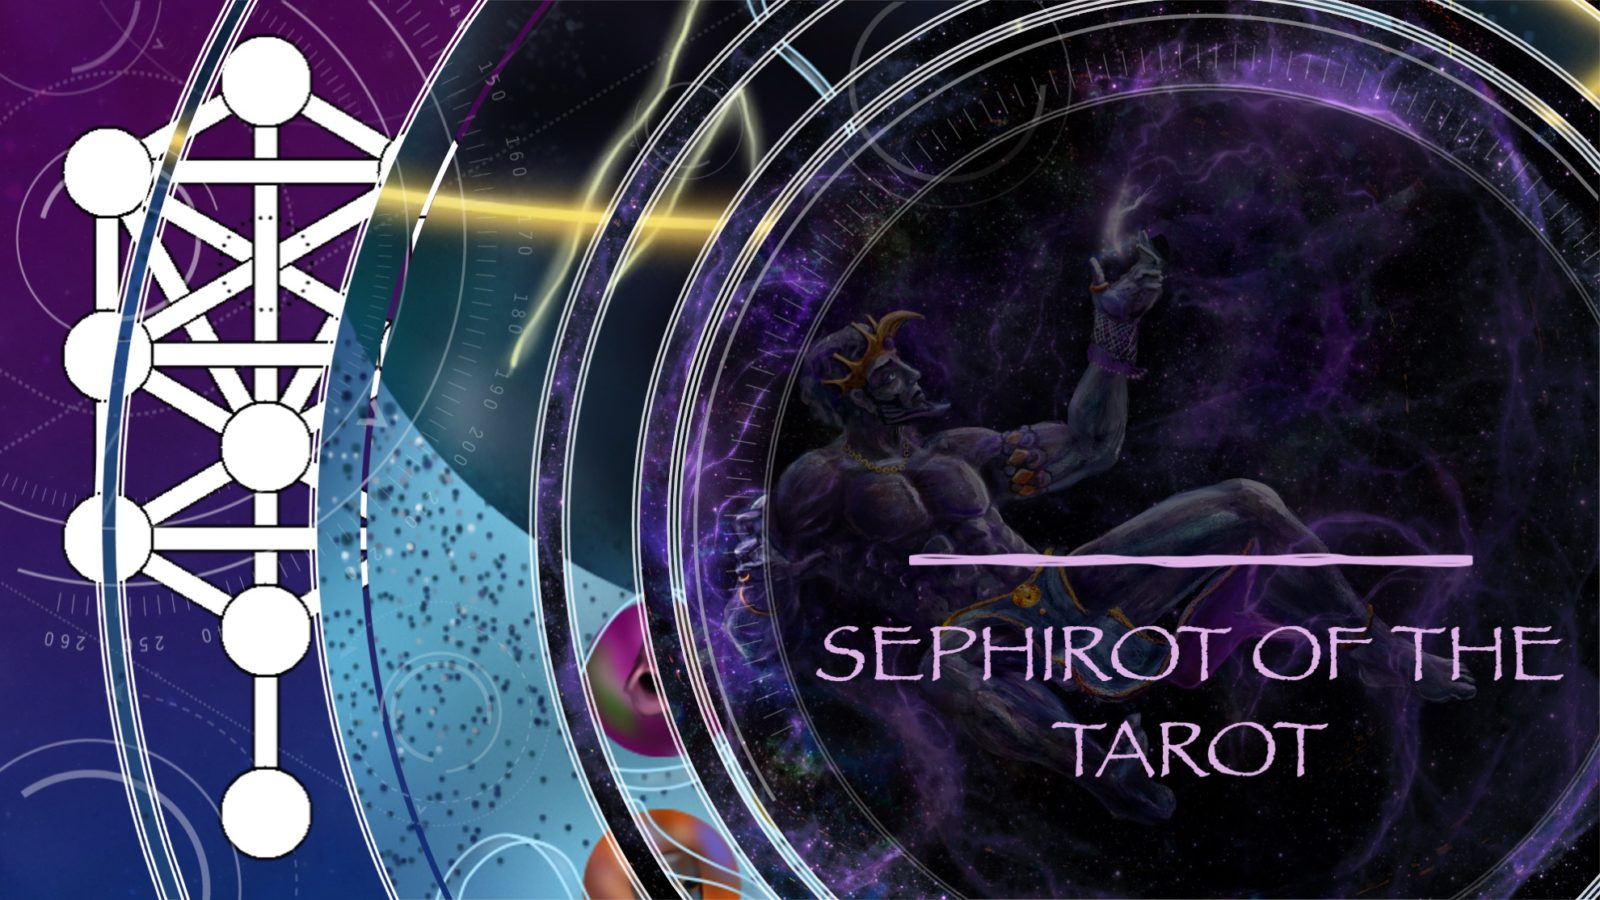 Sephrot Of The Tarot